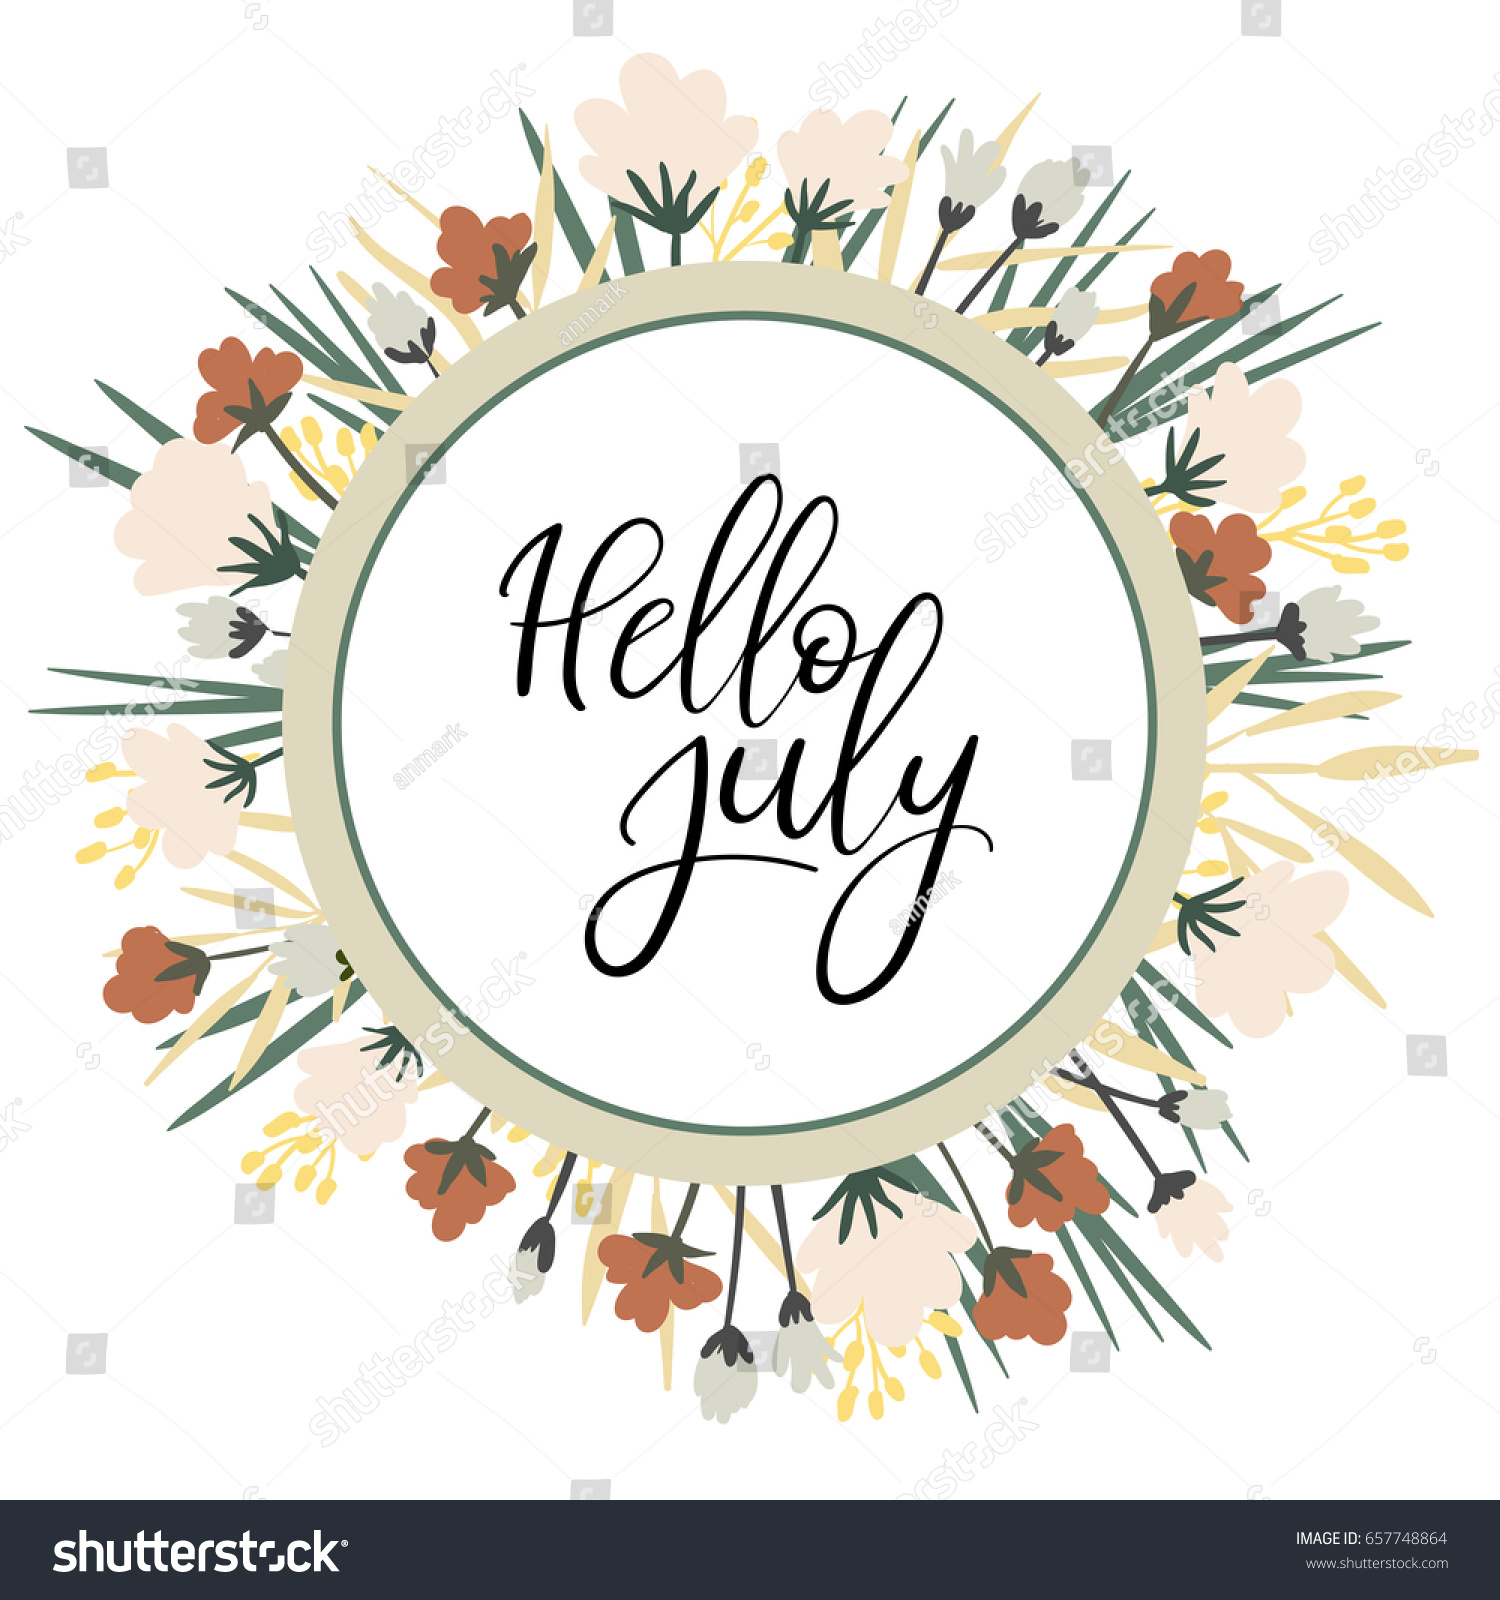 Hello July Calligraphy Inscription. Summer Greeting Card, Postcard, Card,  Invitation, Banner